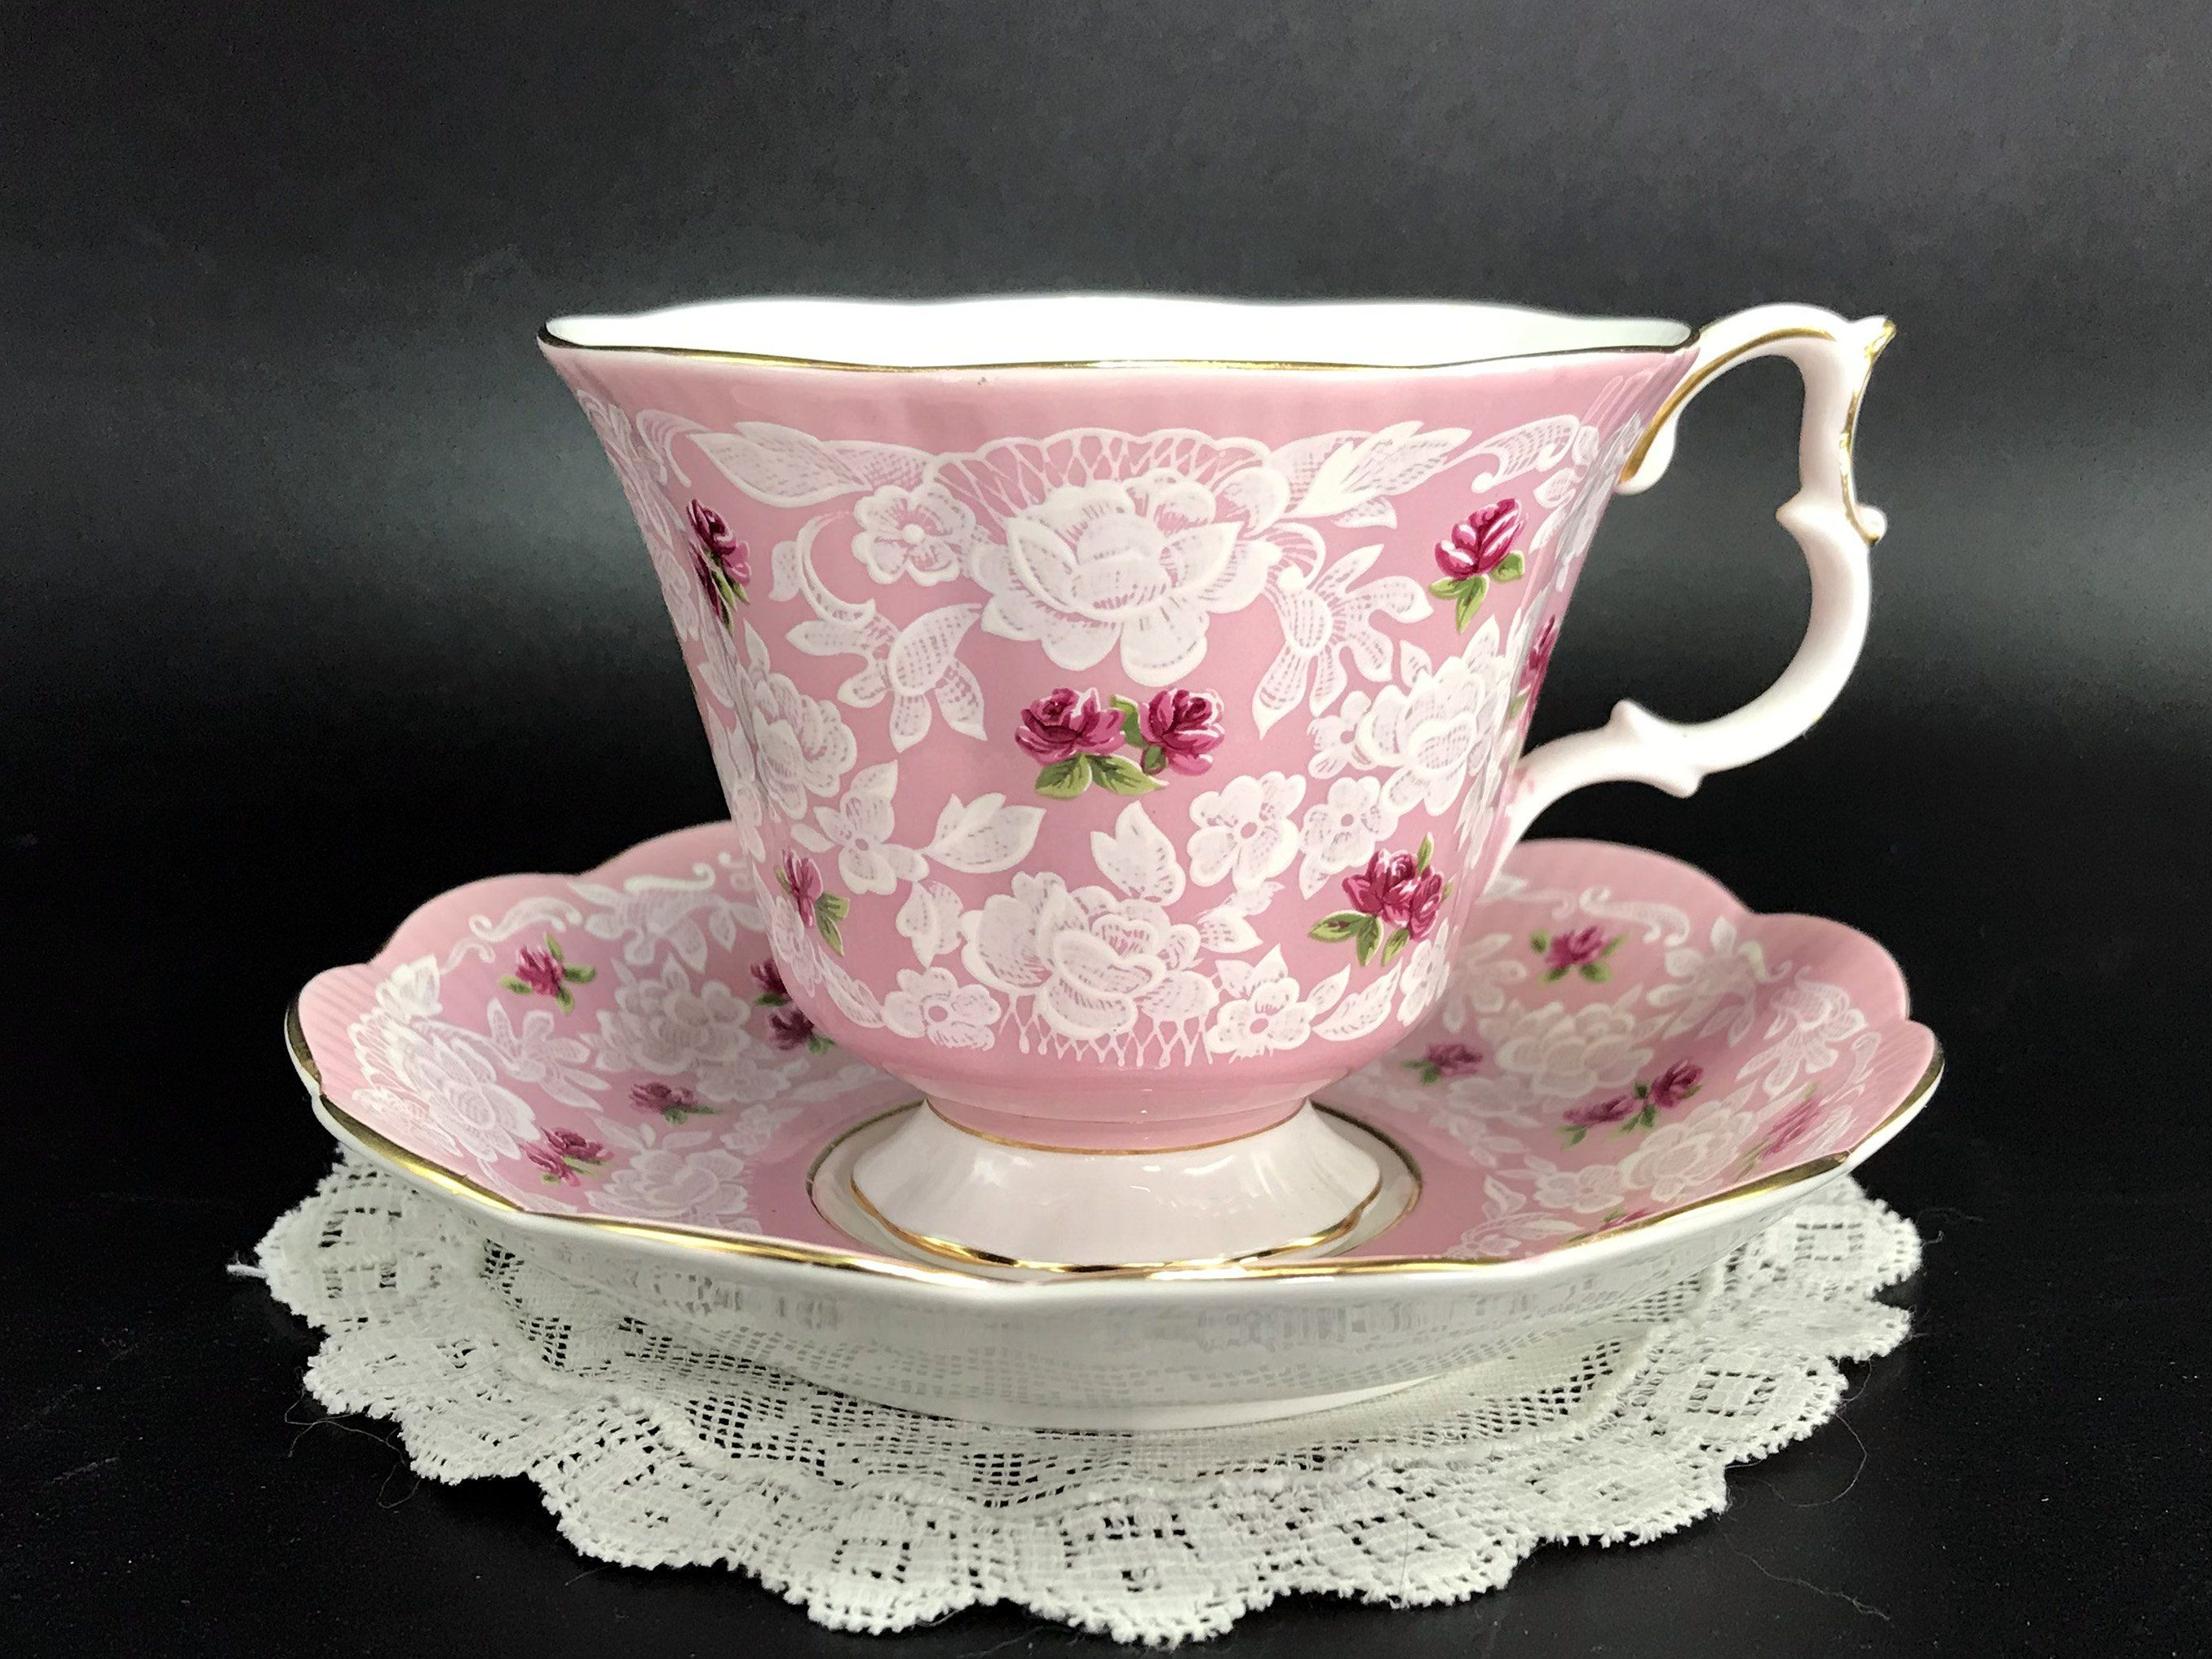 Royal Albert True Love Teacup and Saucer, Pink Chintz Tea Cup, Made in England -J #teacups